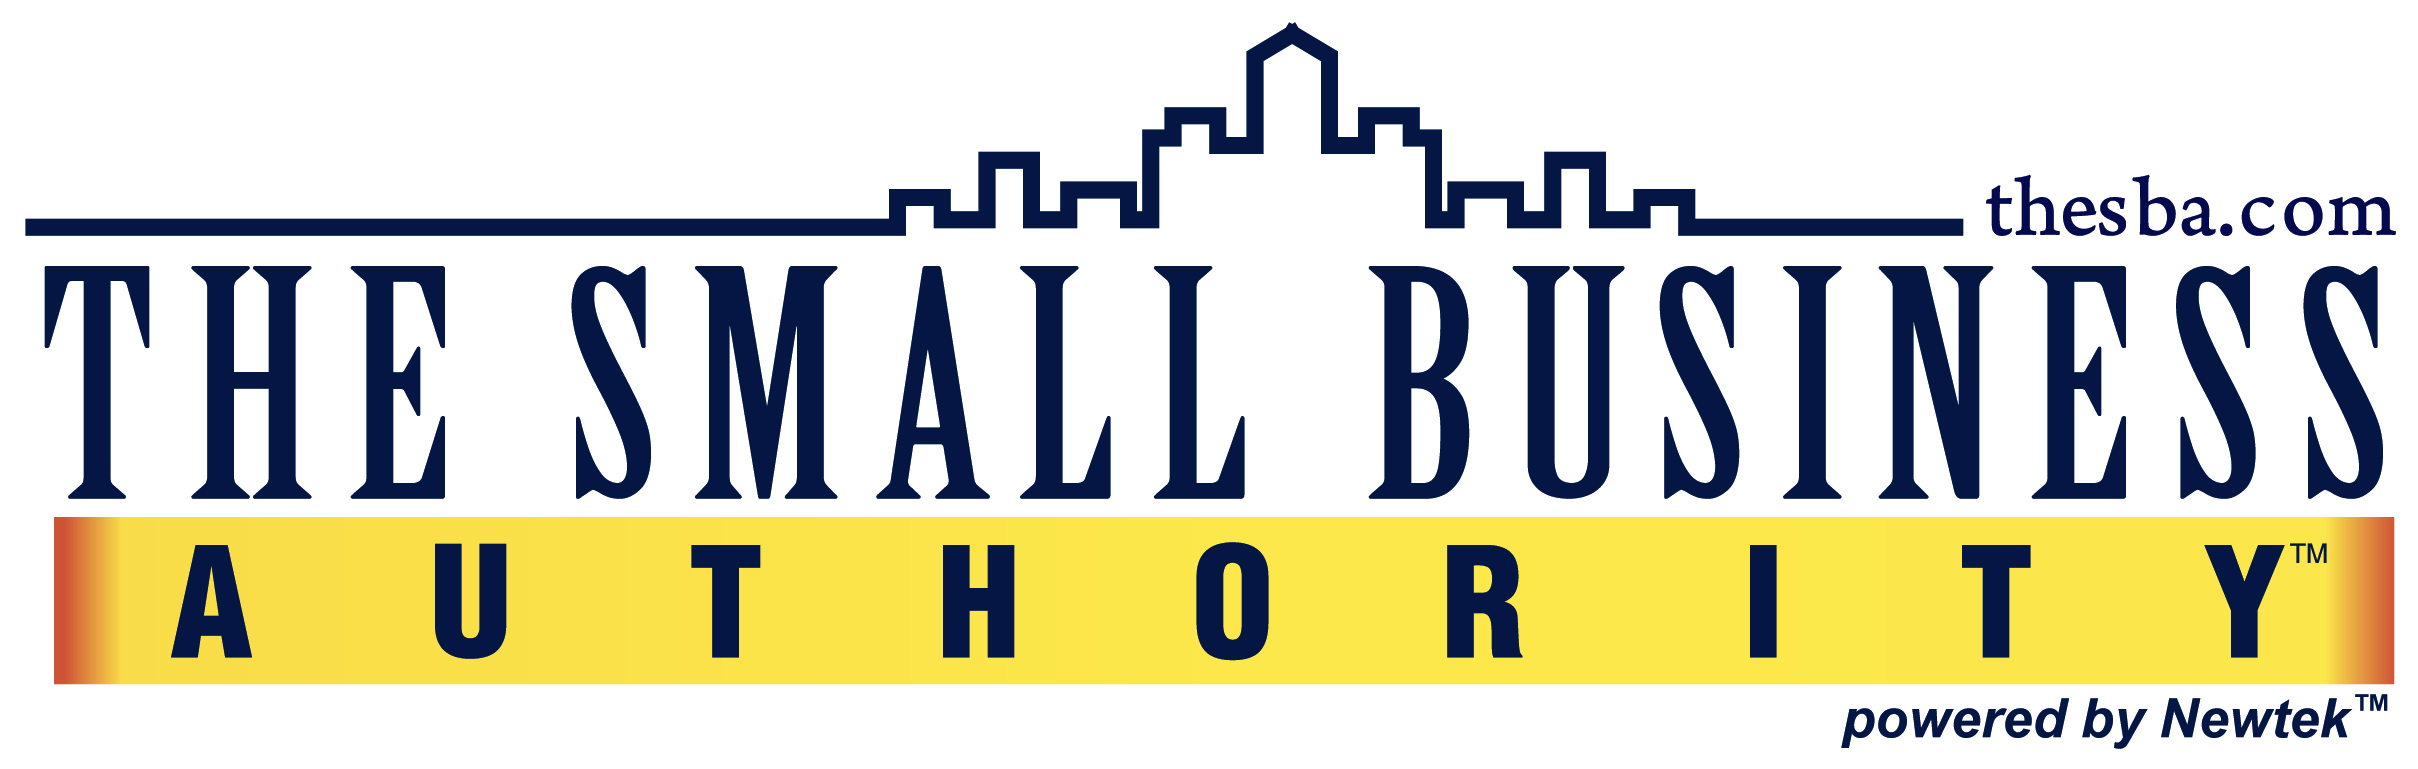 The Small Business Authority Logo